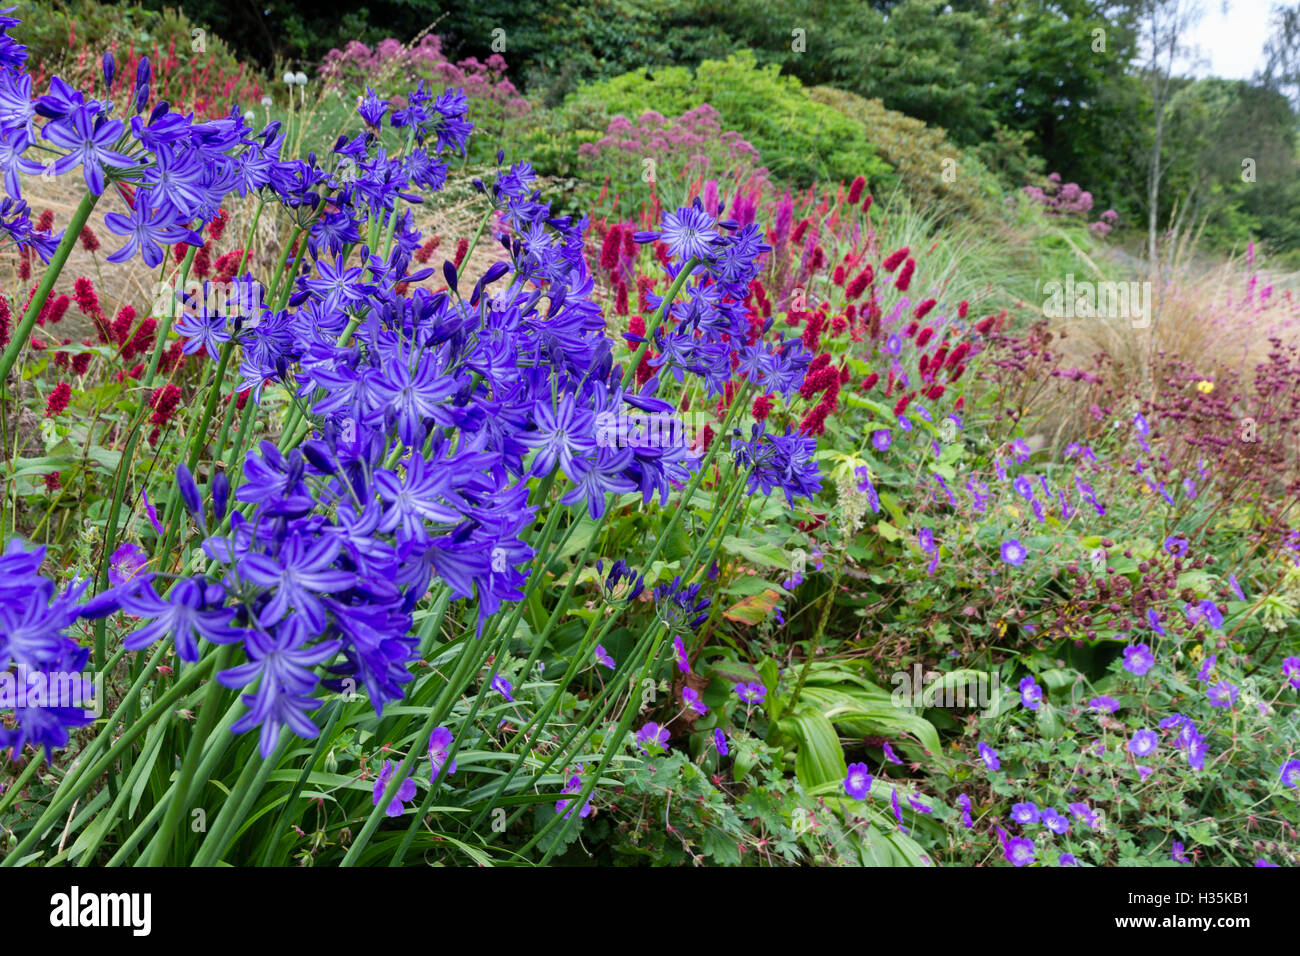 Pale and dark blue striped flowers of the African lily, Agapanthus 'Midnight Star' dominate the view of - Stock Image